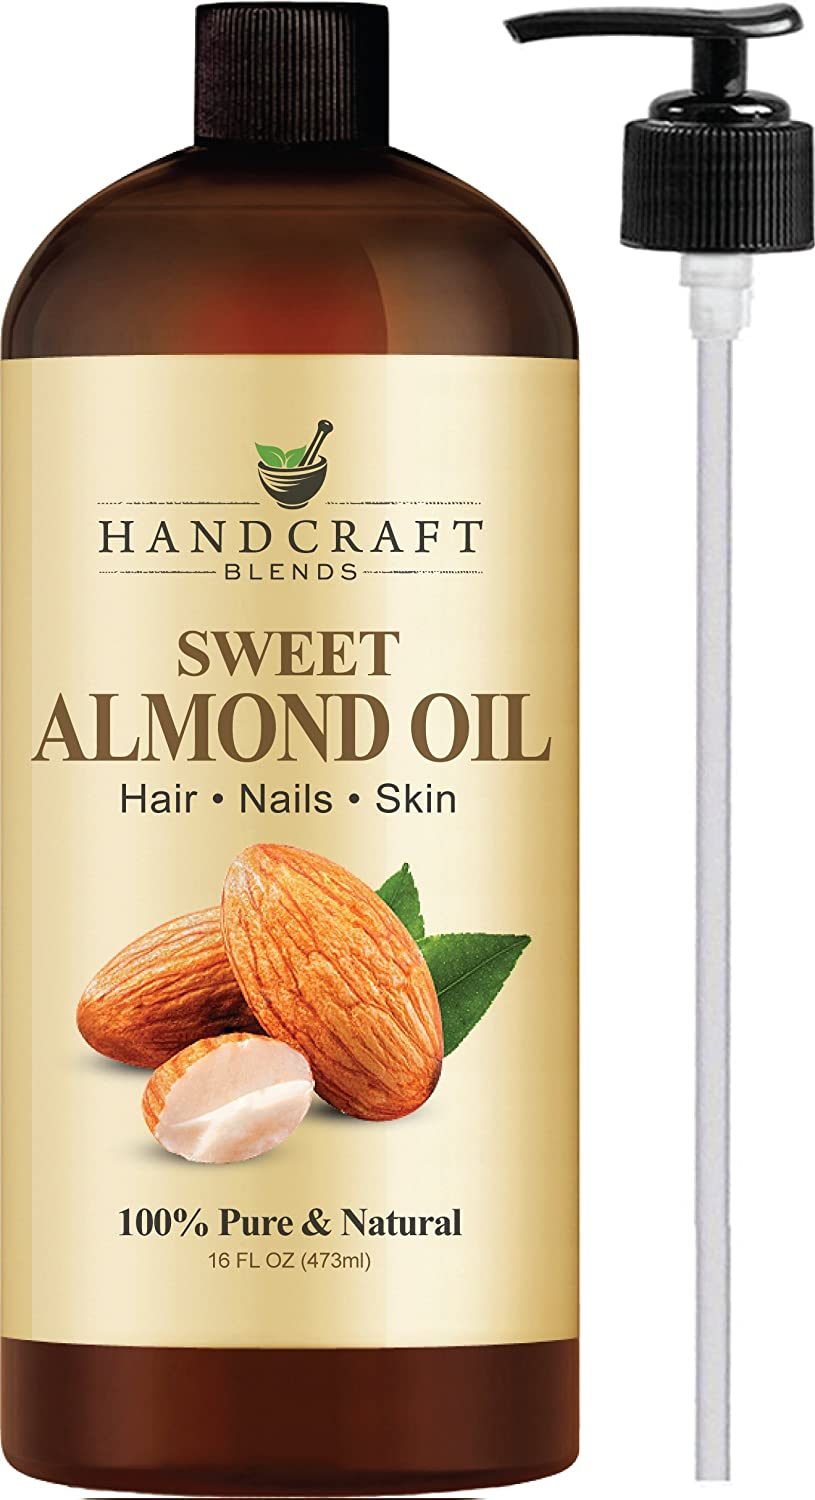 Handcraft Pure Sweet Almond Oil - 100 Percent All Natural - Premium Therapeutic Grade Carrier Oil for Aromatherapy, Massage, Moisturizing Skin and Hair - Huge 16 oz